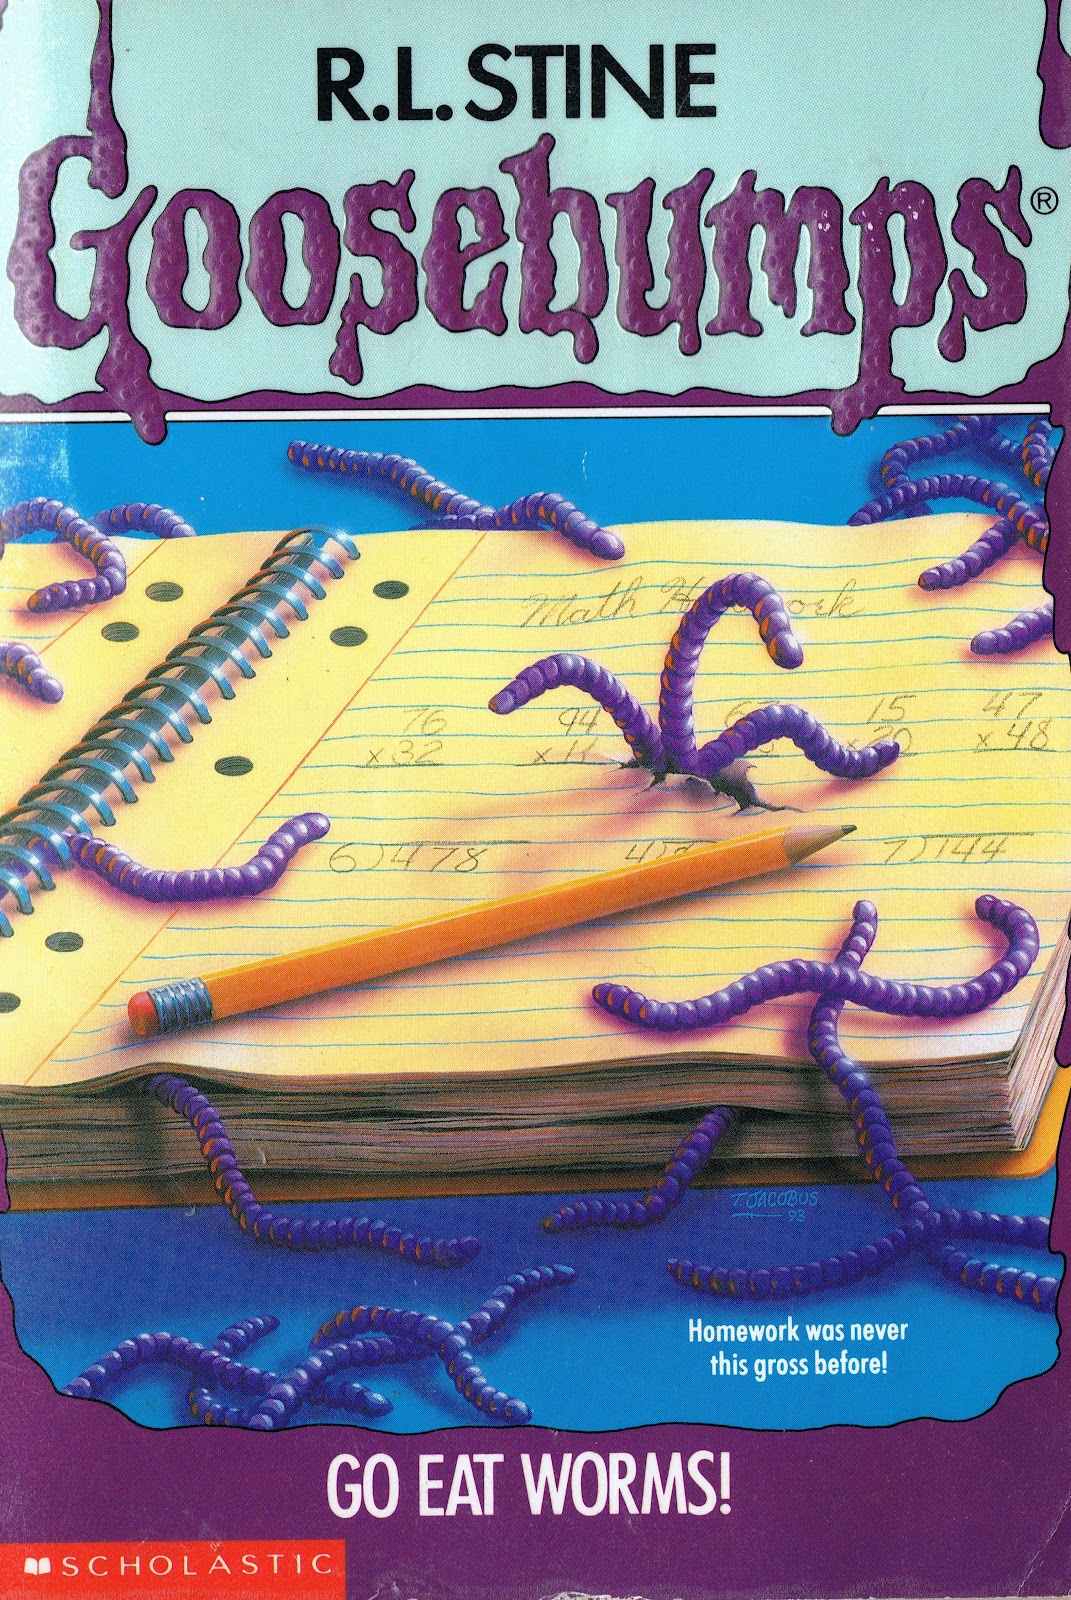 an analysis of goosebumps go eat Rent movies and tv shows on dvd and blu-ray 1-month free trial fast, free delivery no late fees.